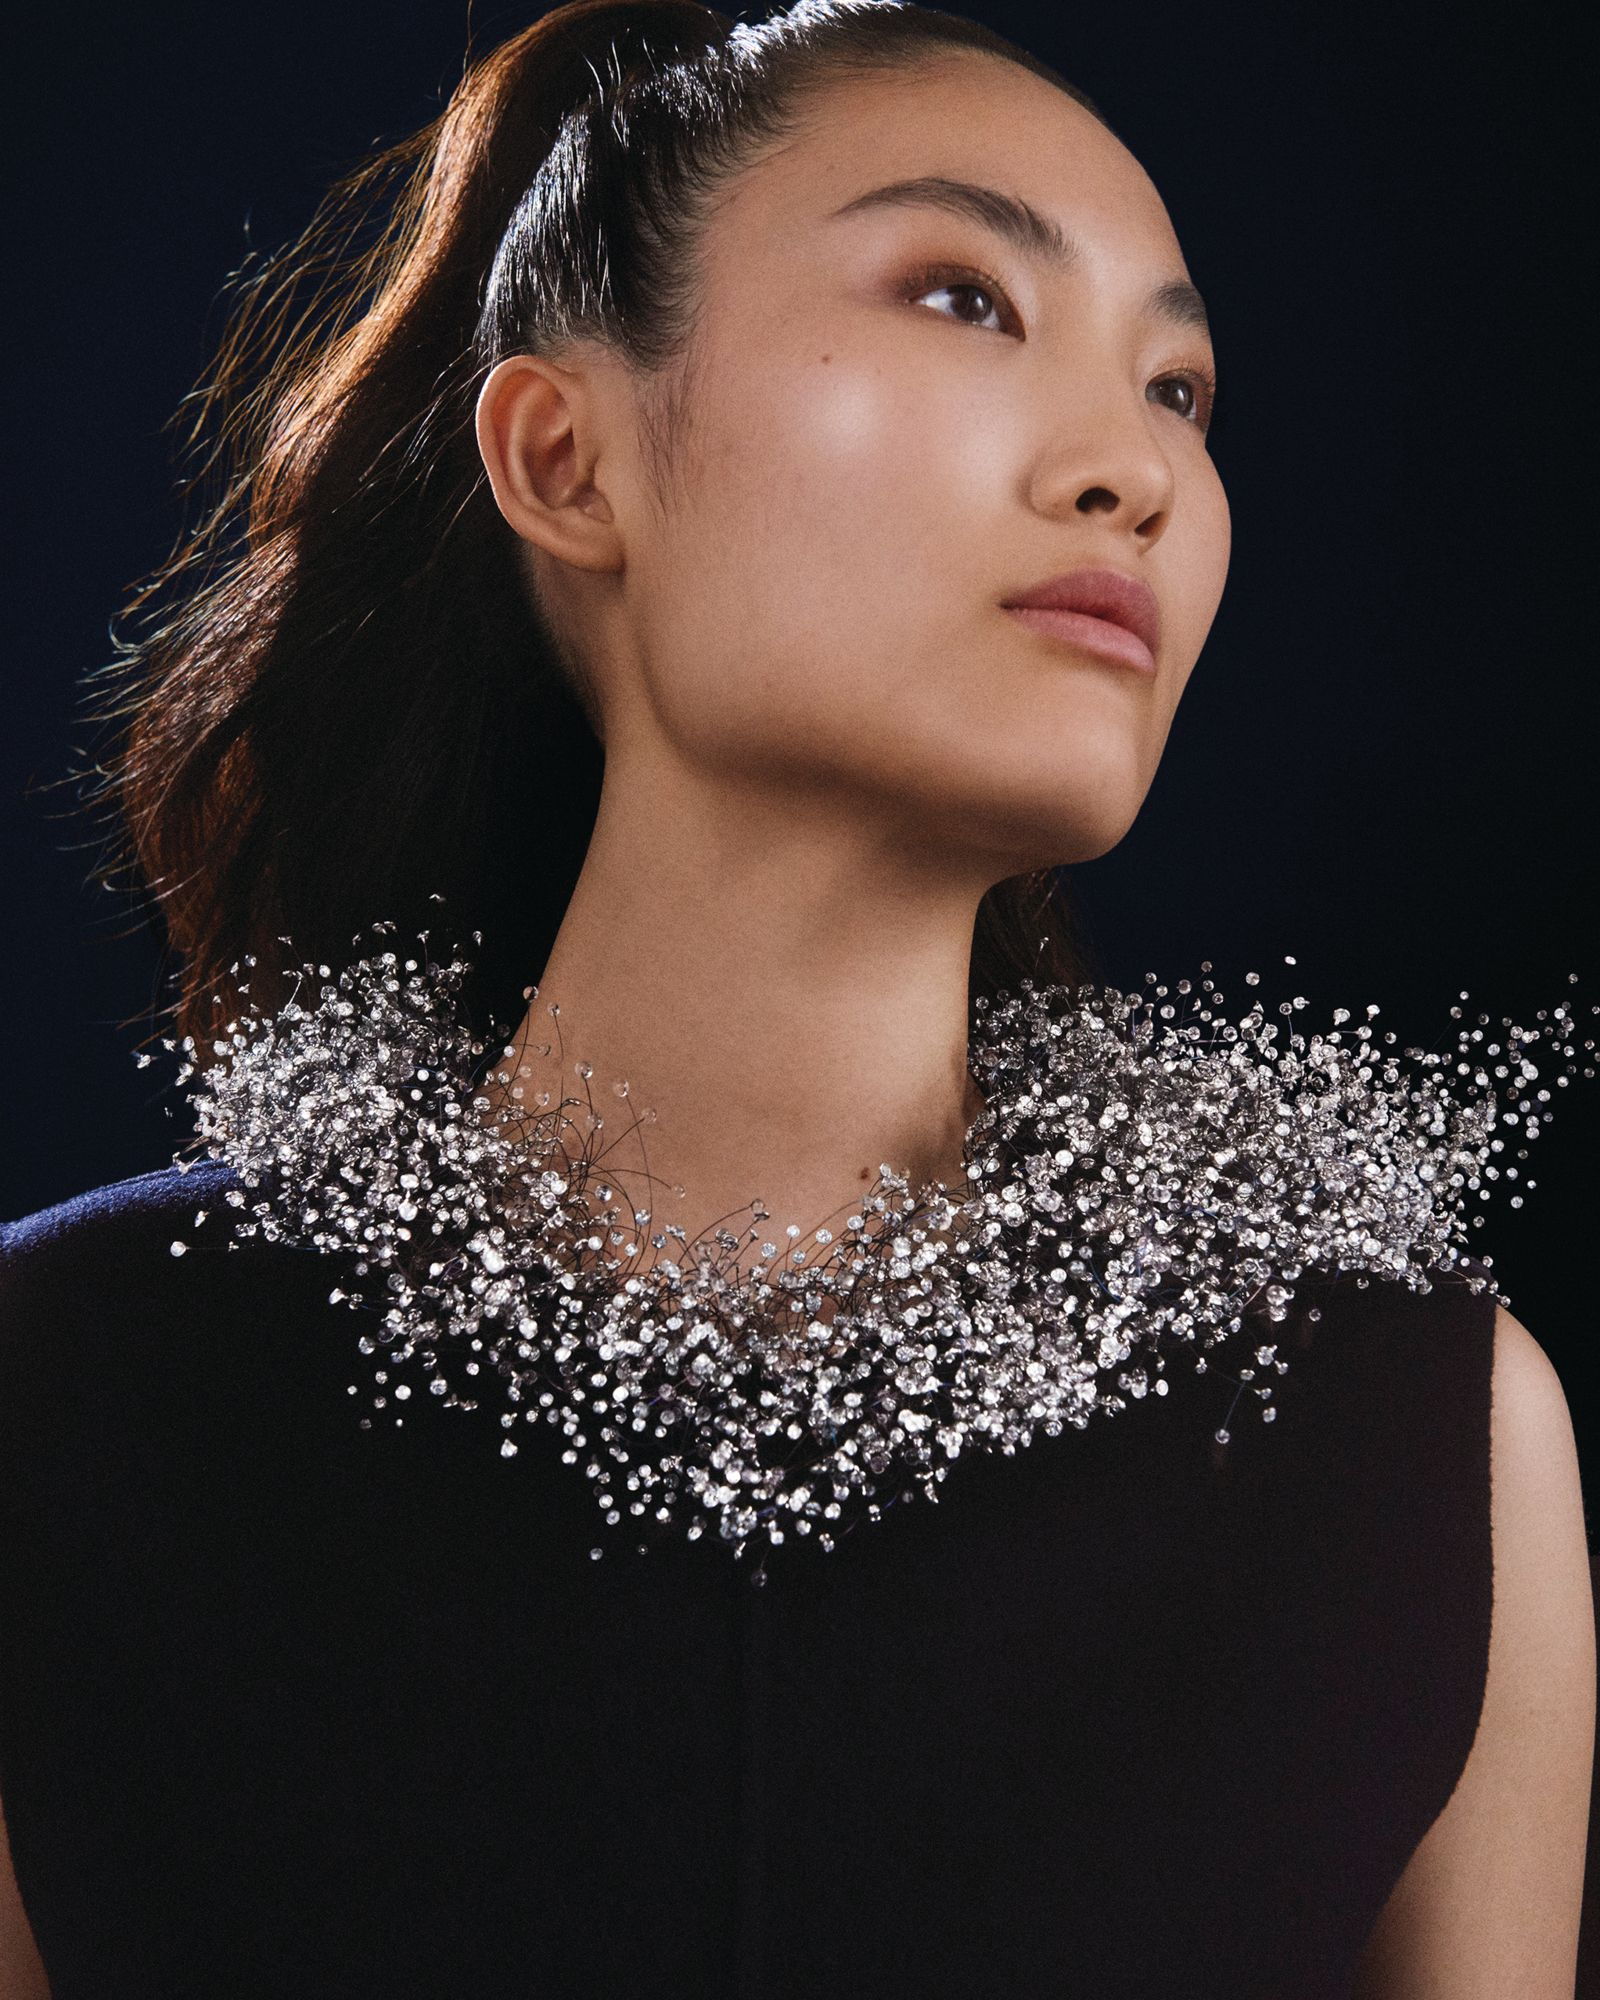 Nuage en Apesanteur necklace in titanium and white gold set with glass beads and diamonds by Boucheron (Image: Boucheron)